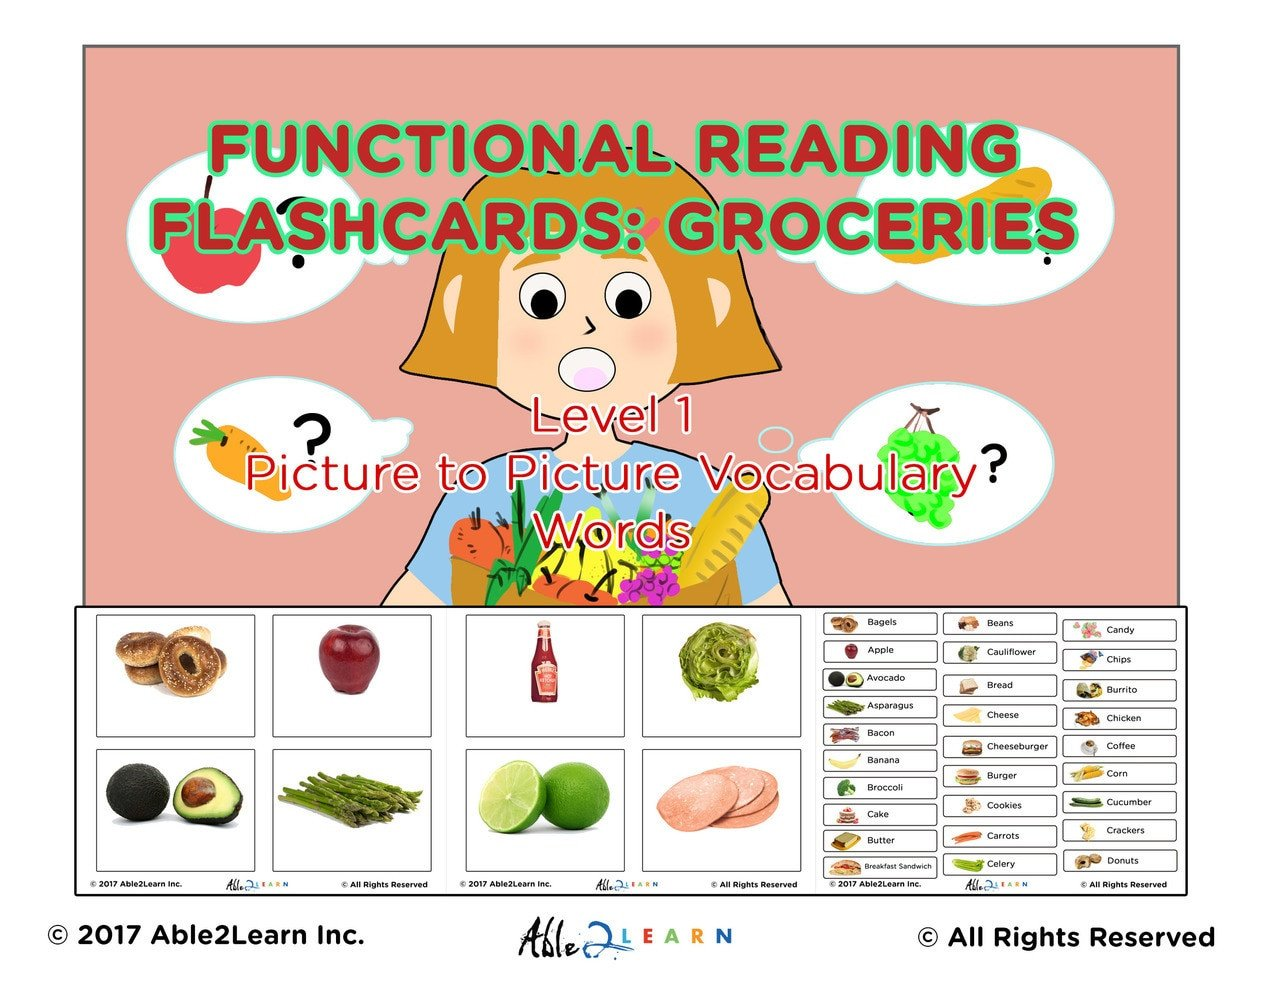 Teaching Independent Living Skills Worksheets Life Skills Grocery Food Flashcards 100 Flashcards Pages 32